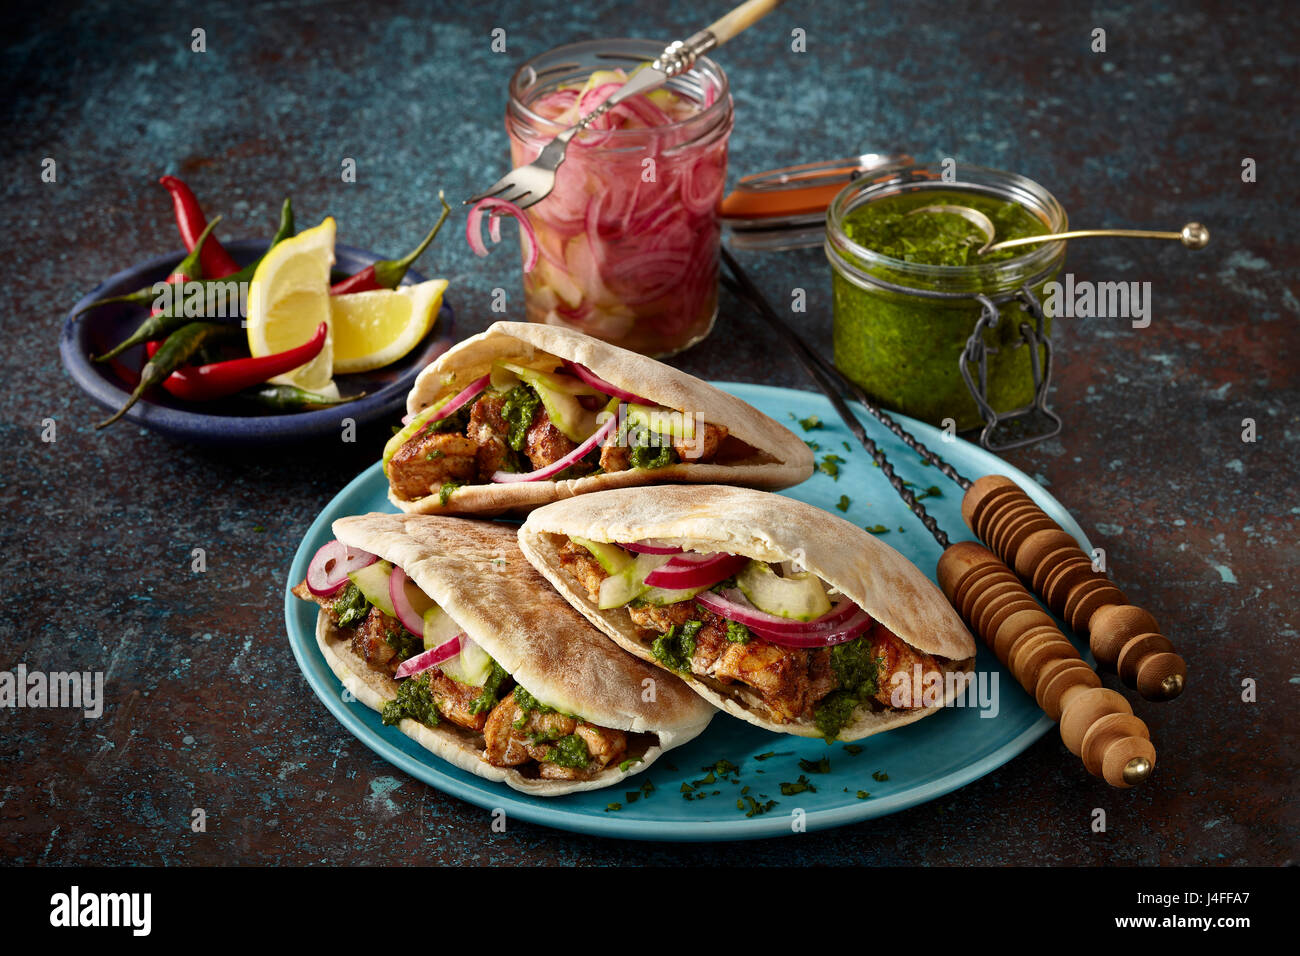 Middle Eastern chicken wrap - Stock Image